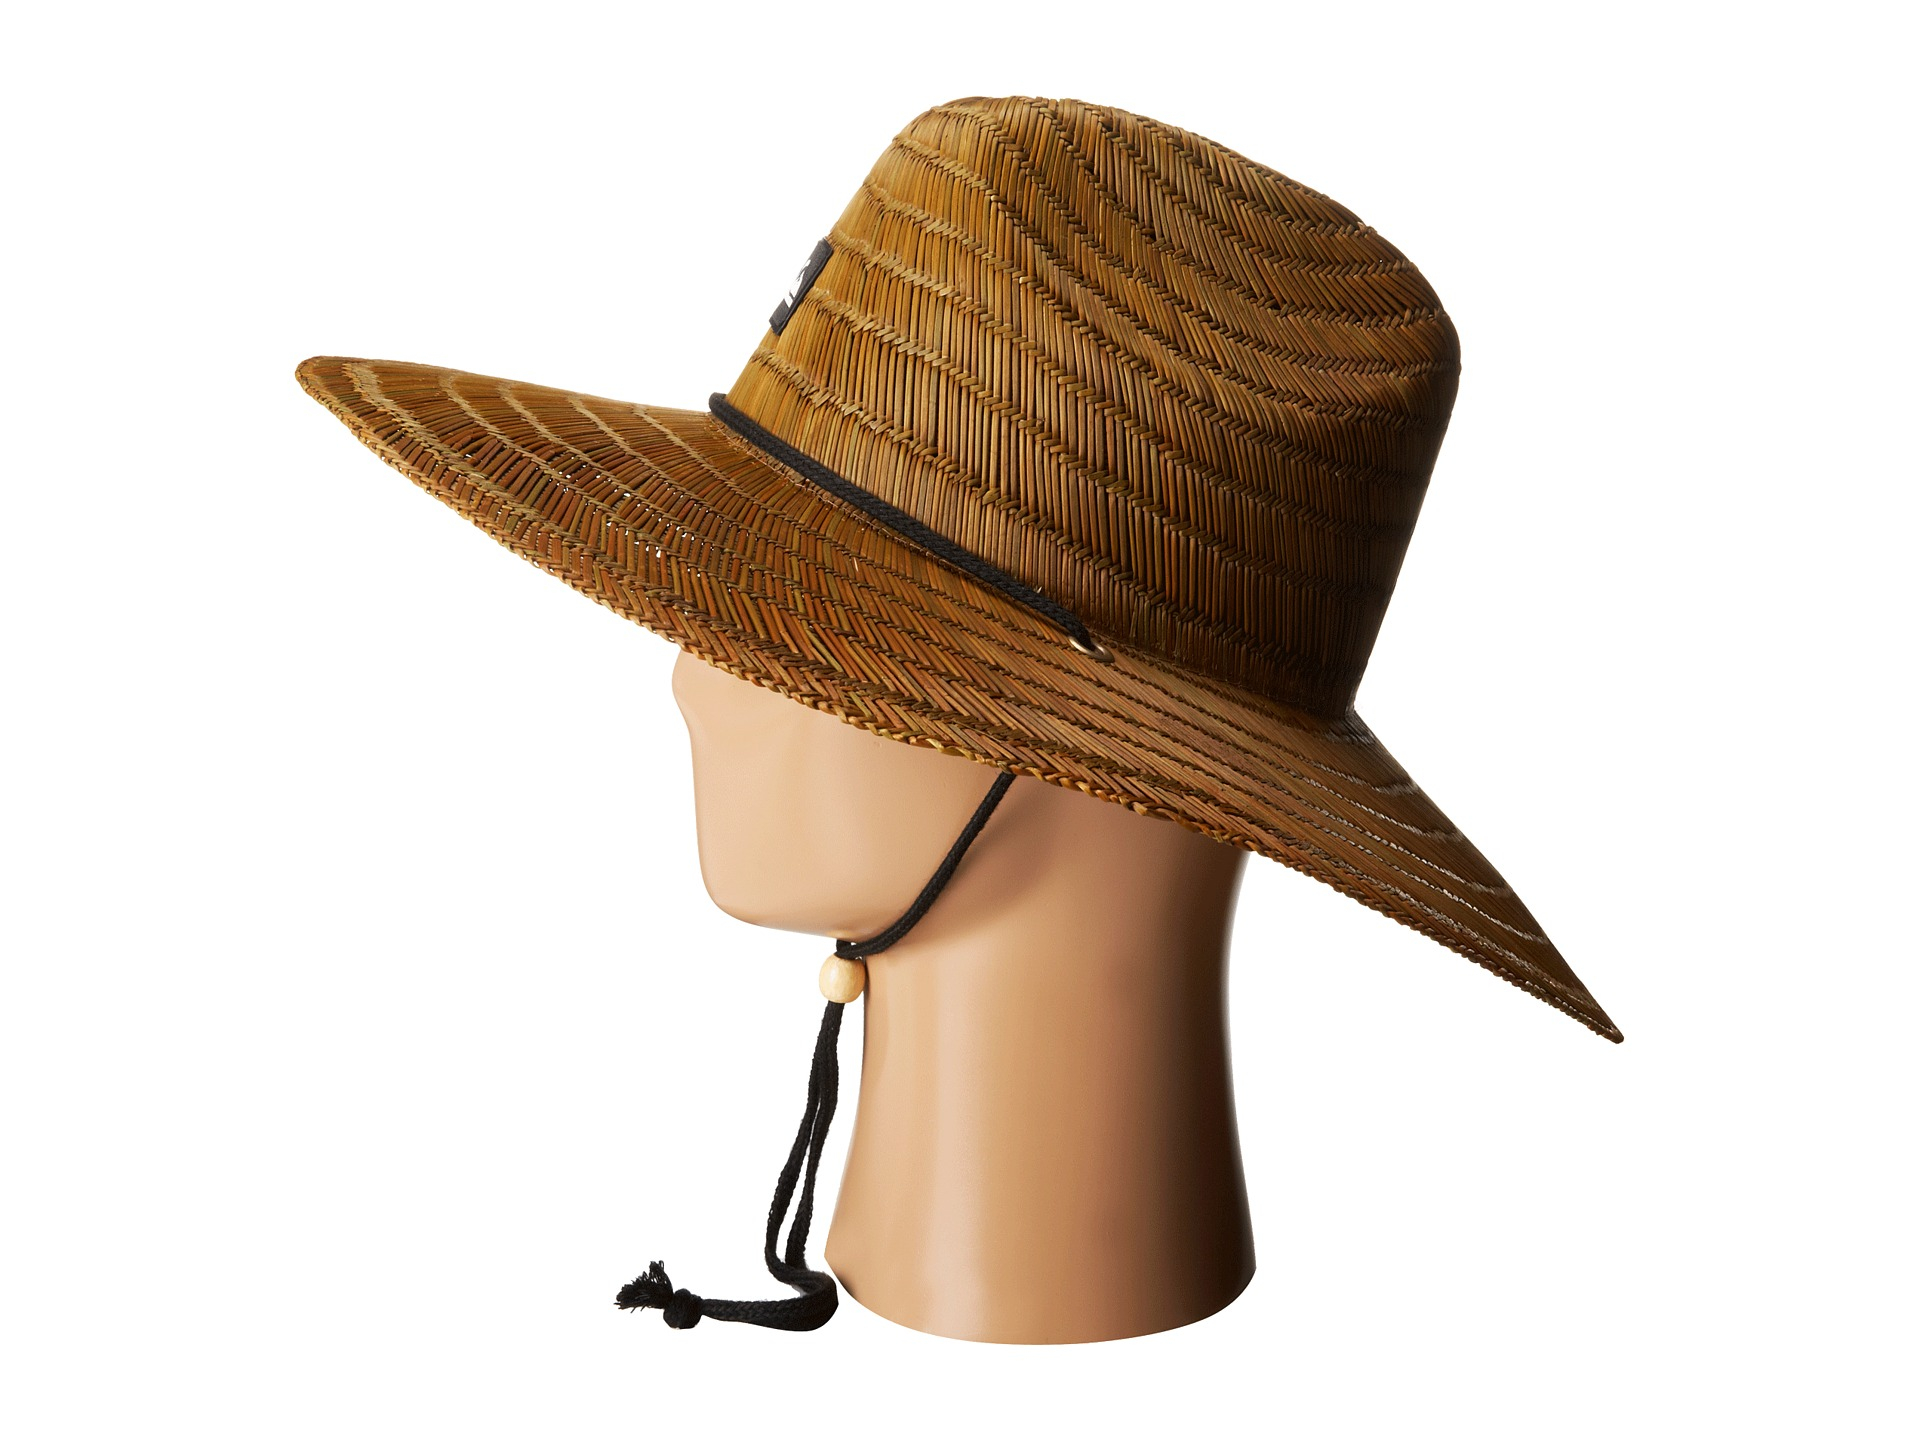 a277105e82e088 ... free shipping lyst quiksilver pierside sun protection hat in brown for  men 875ed f7283